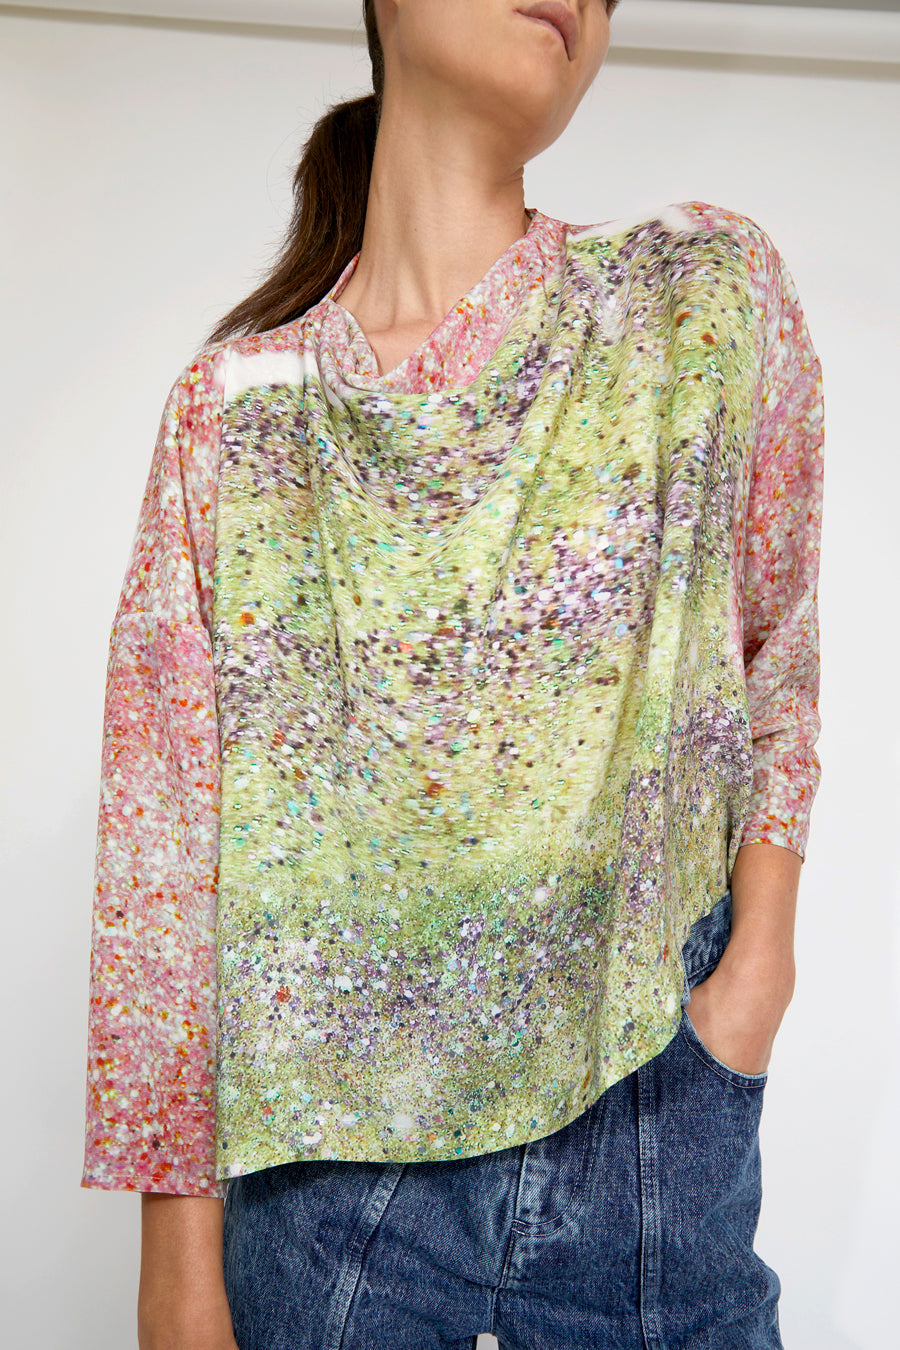 Anntian Asym Blouse Top in Print L Light